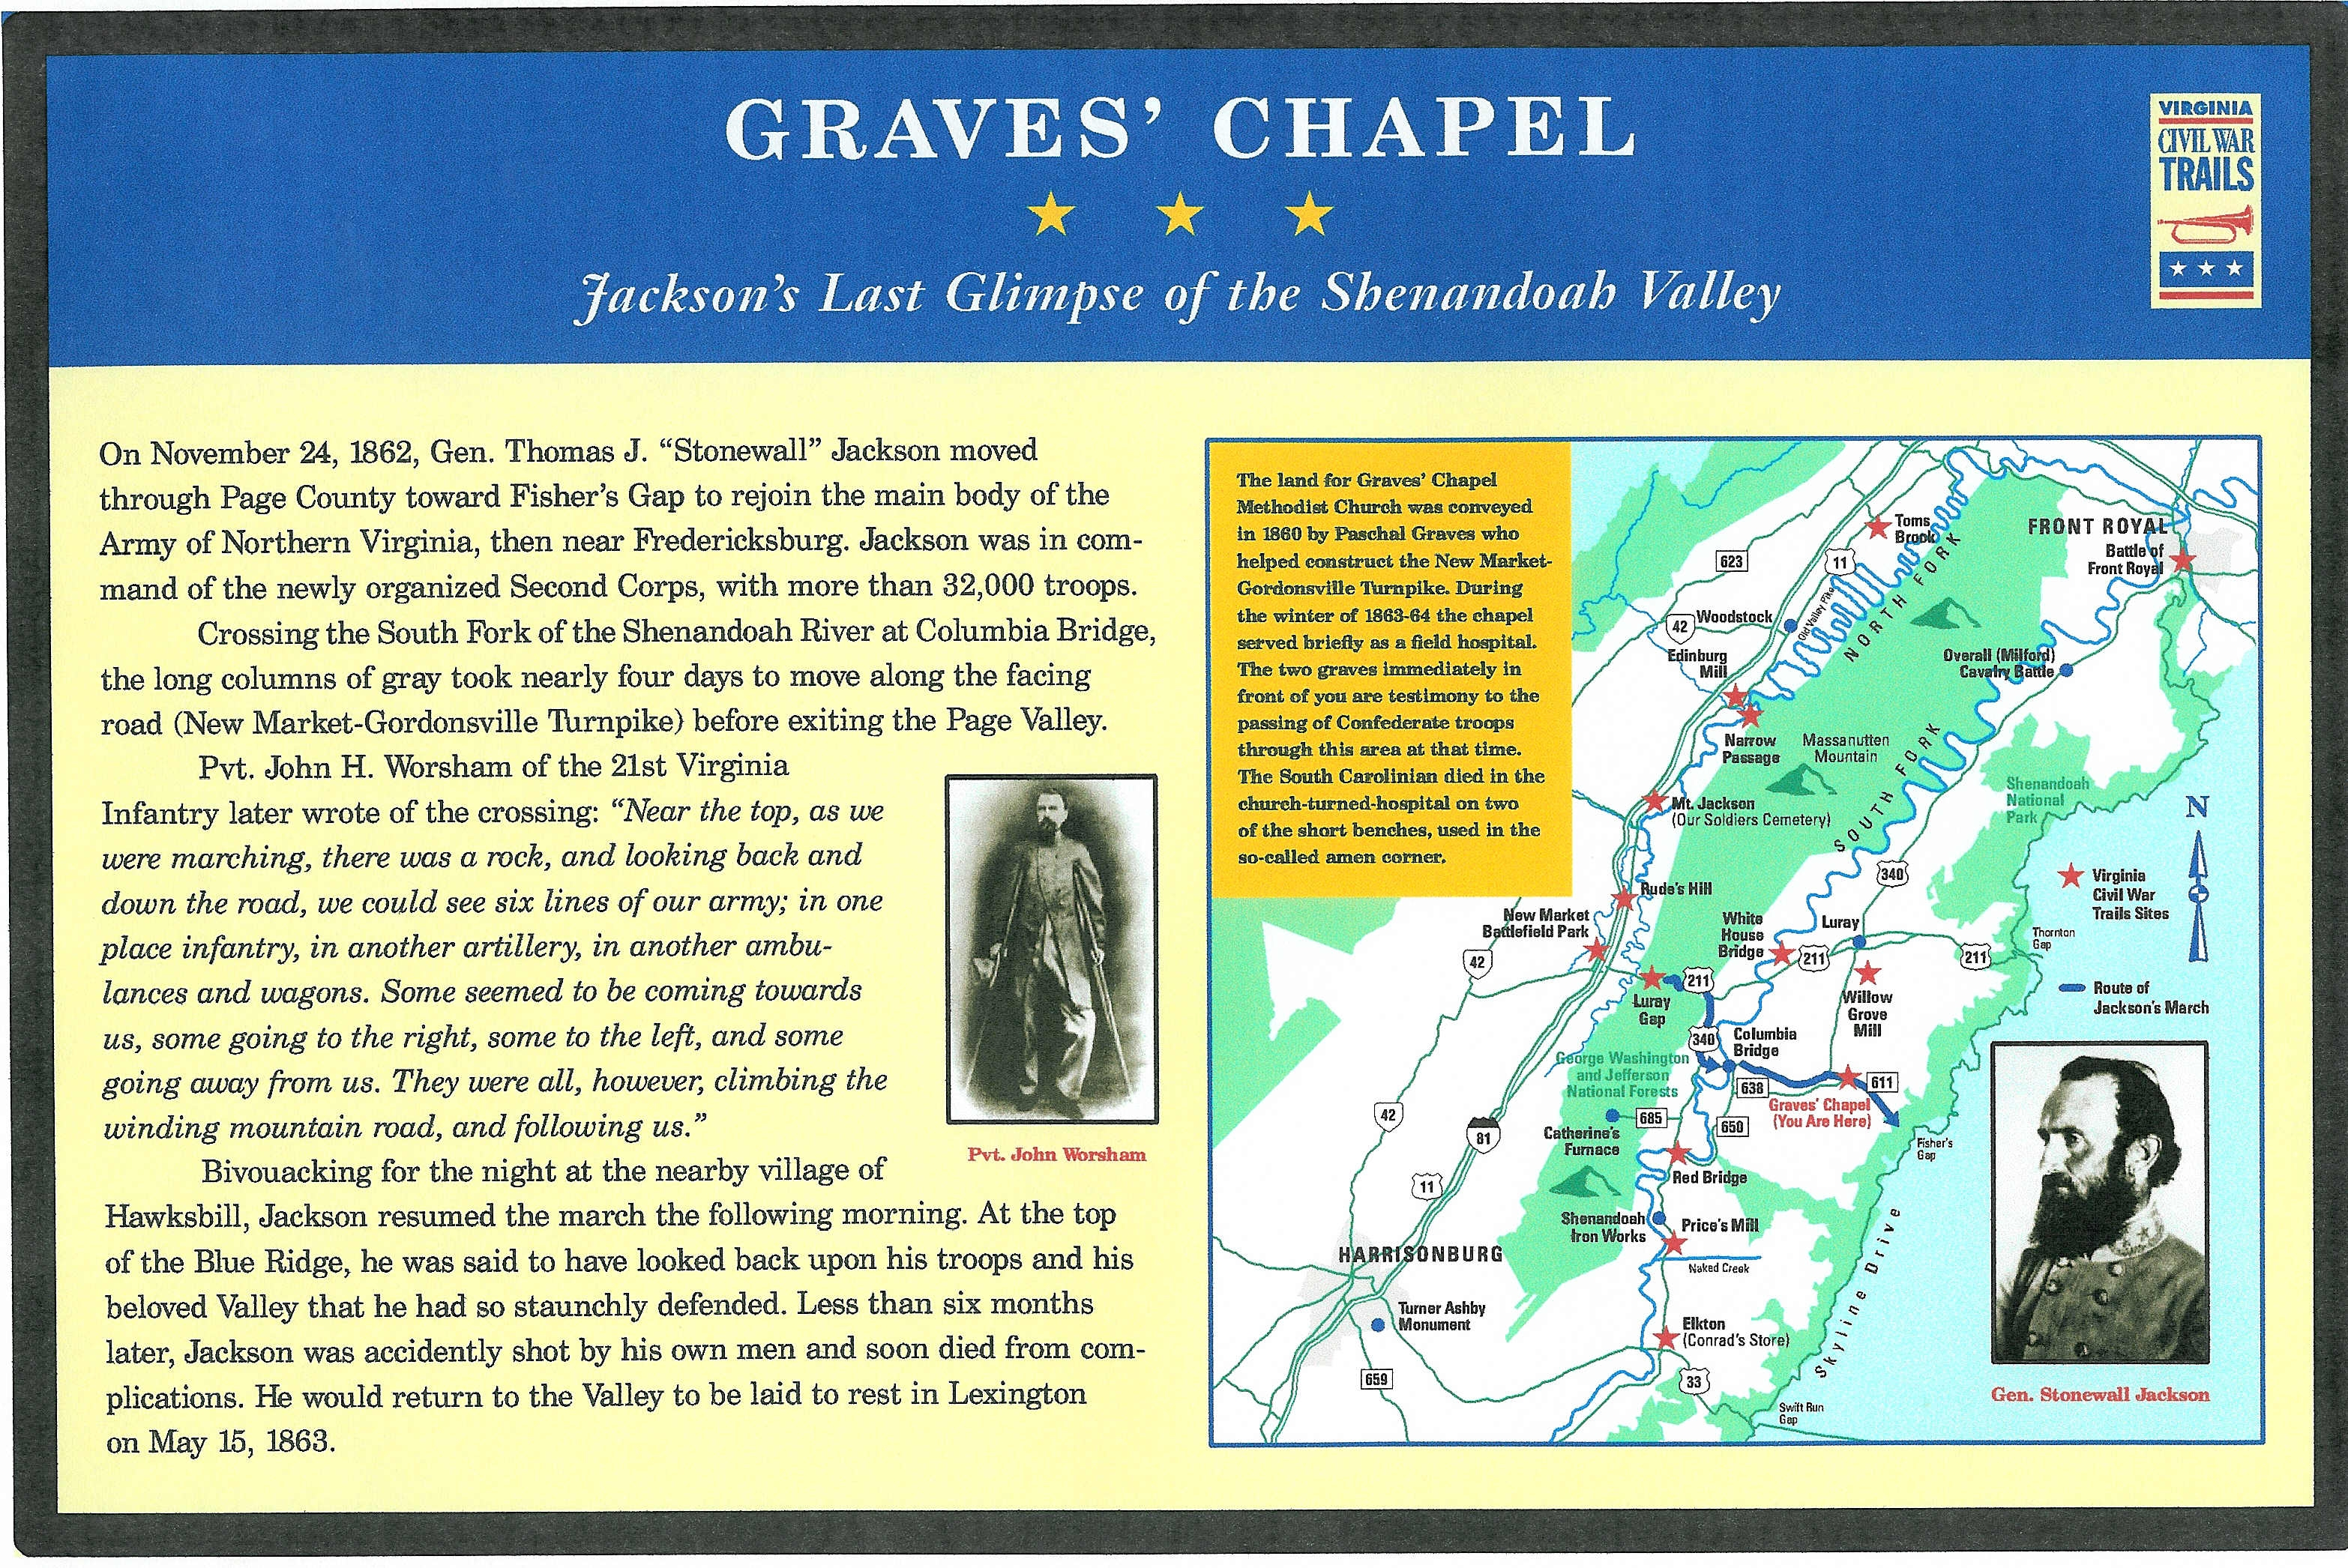 Graves' Chapel Marker